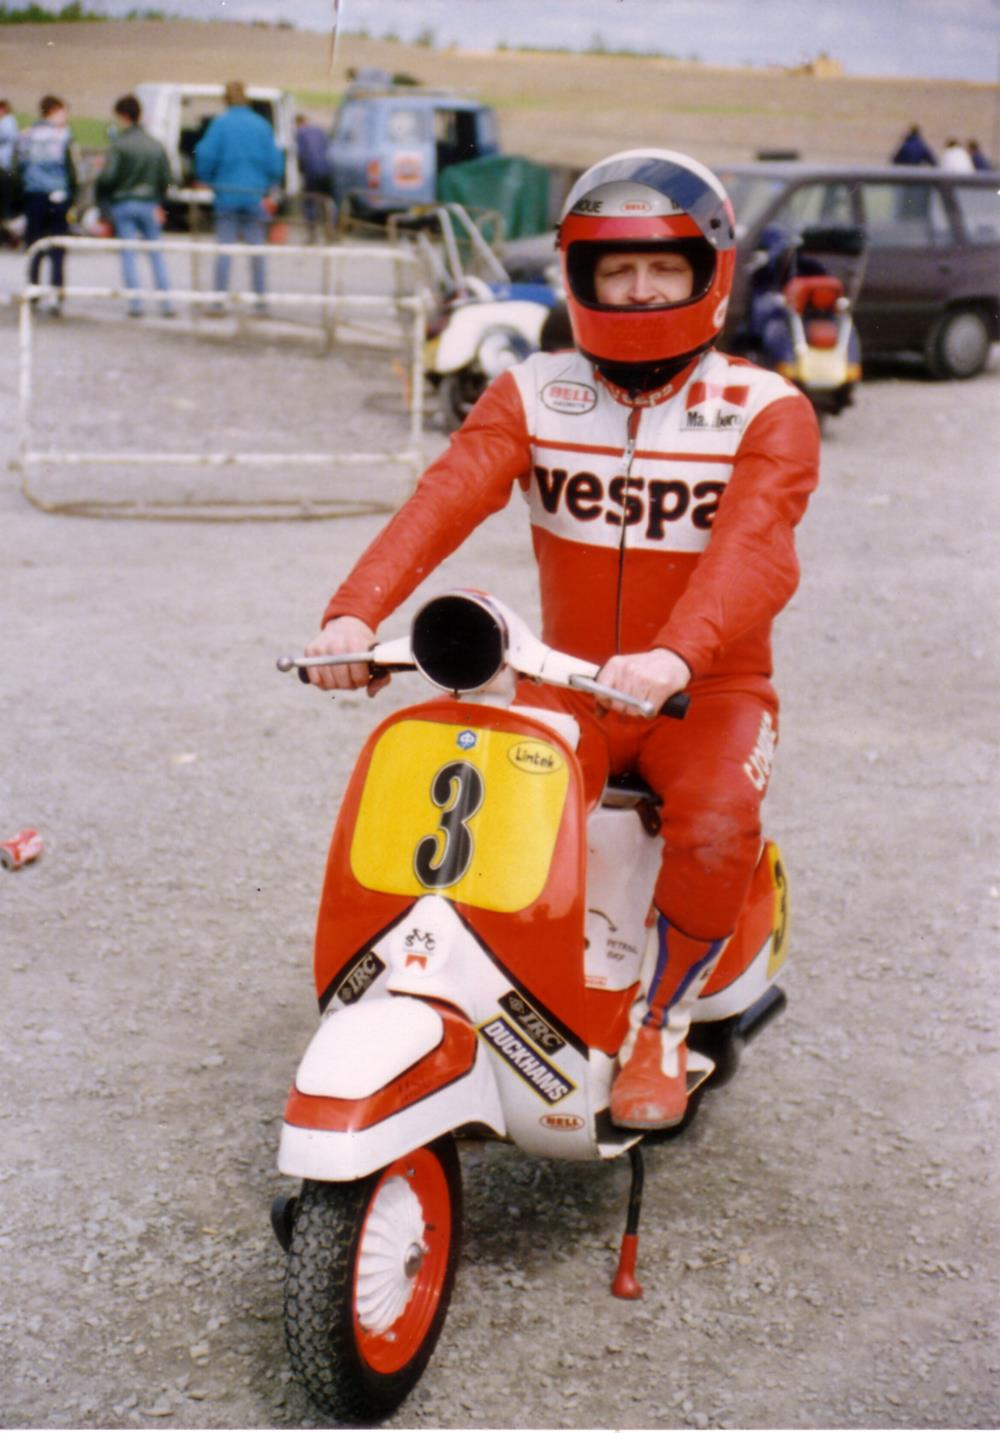 Norrie Kerr in racing leathers on a Vespa racing scooter